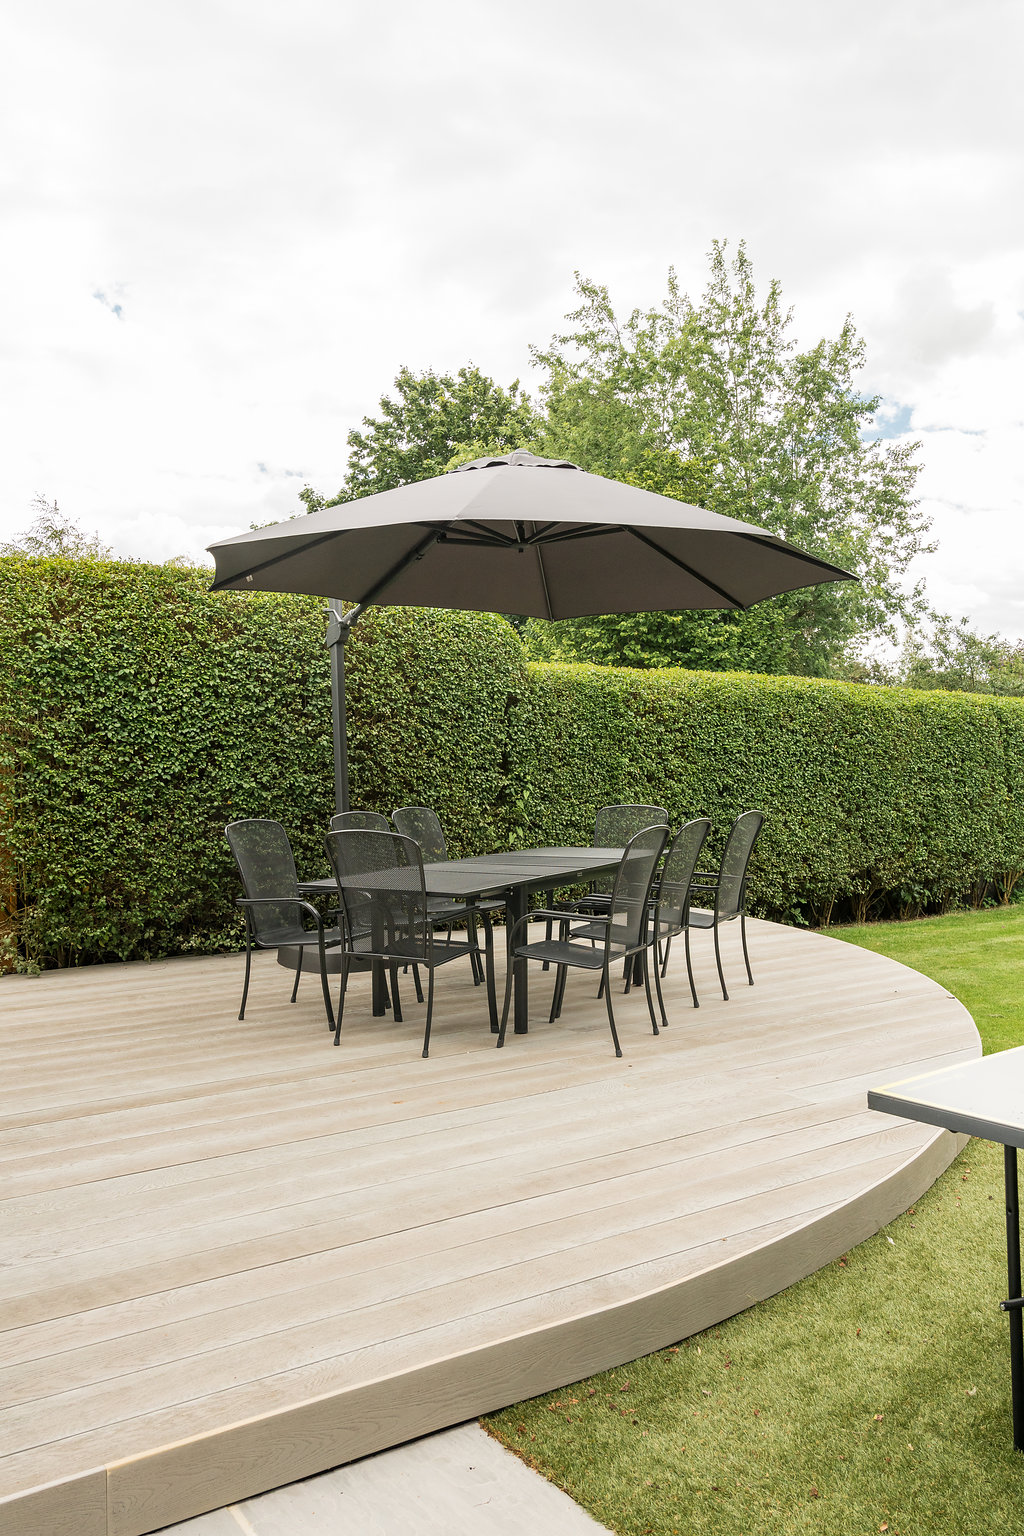 outdoor furniture on landscaped patio area